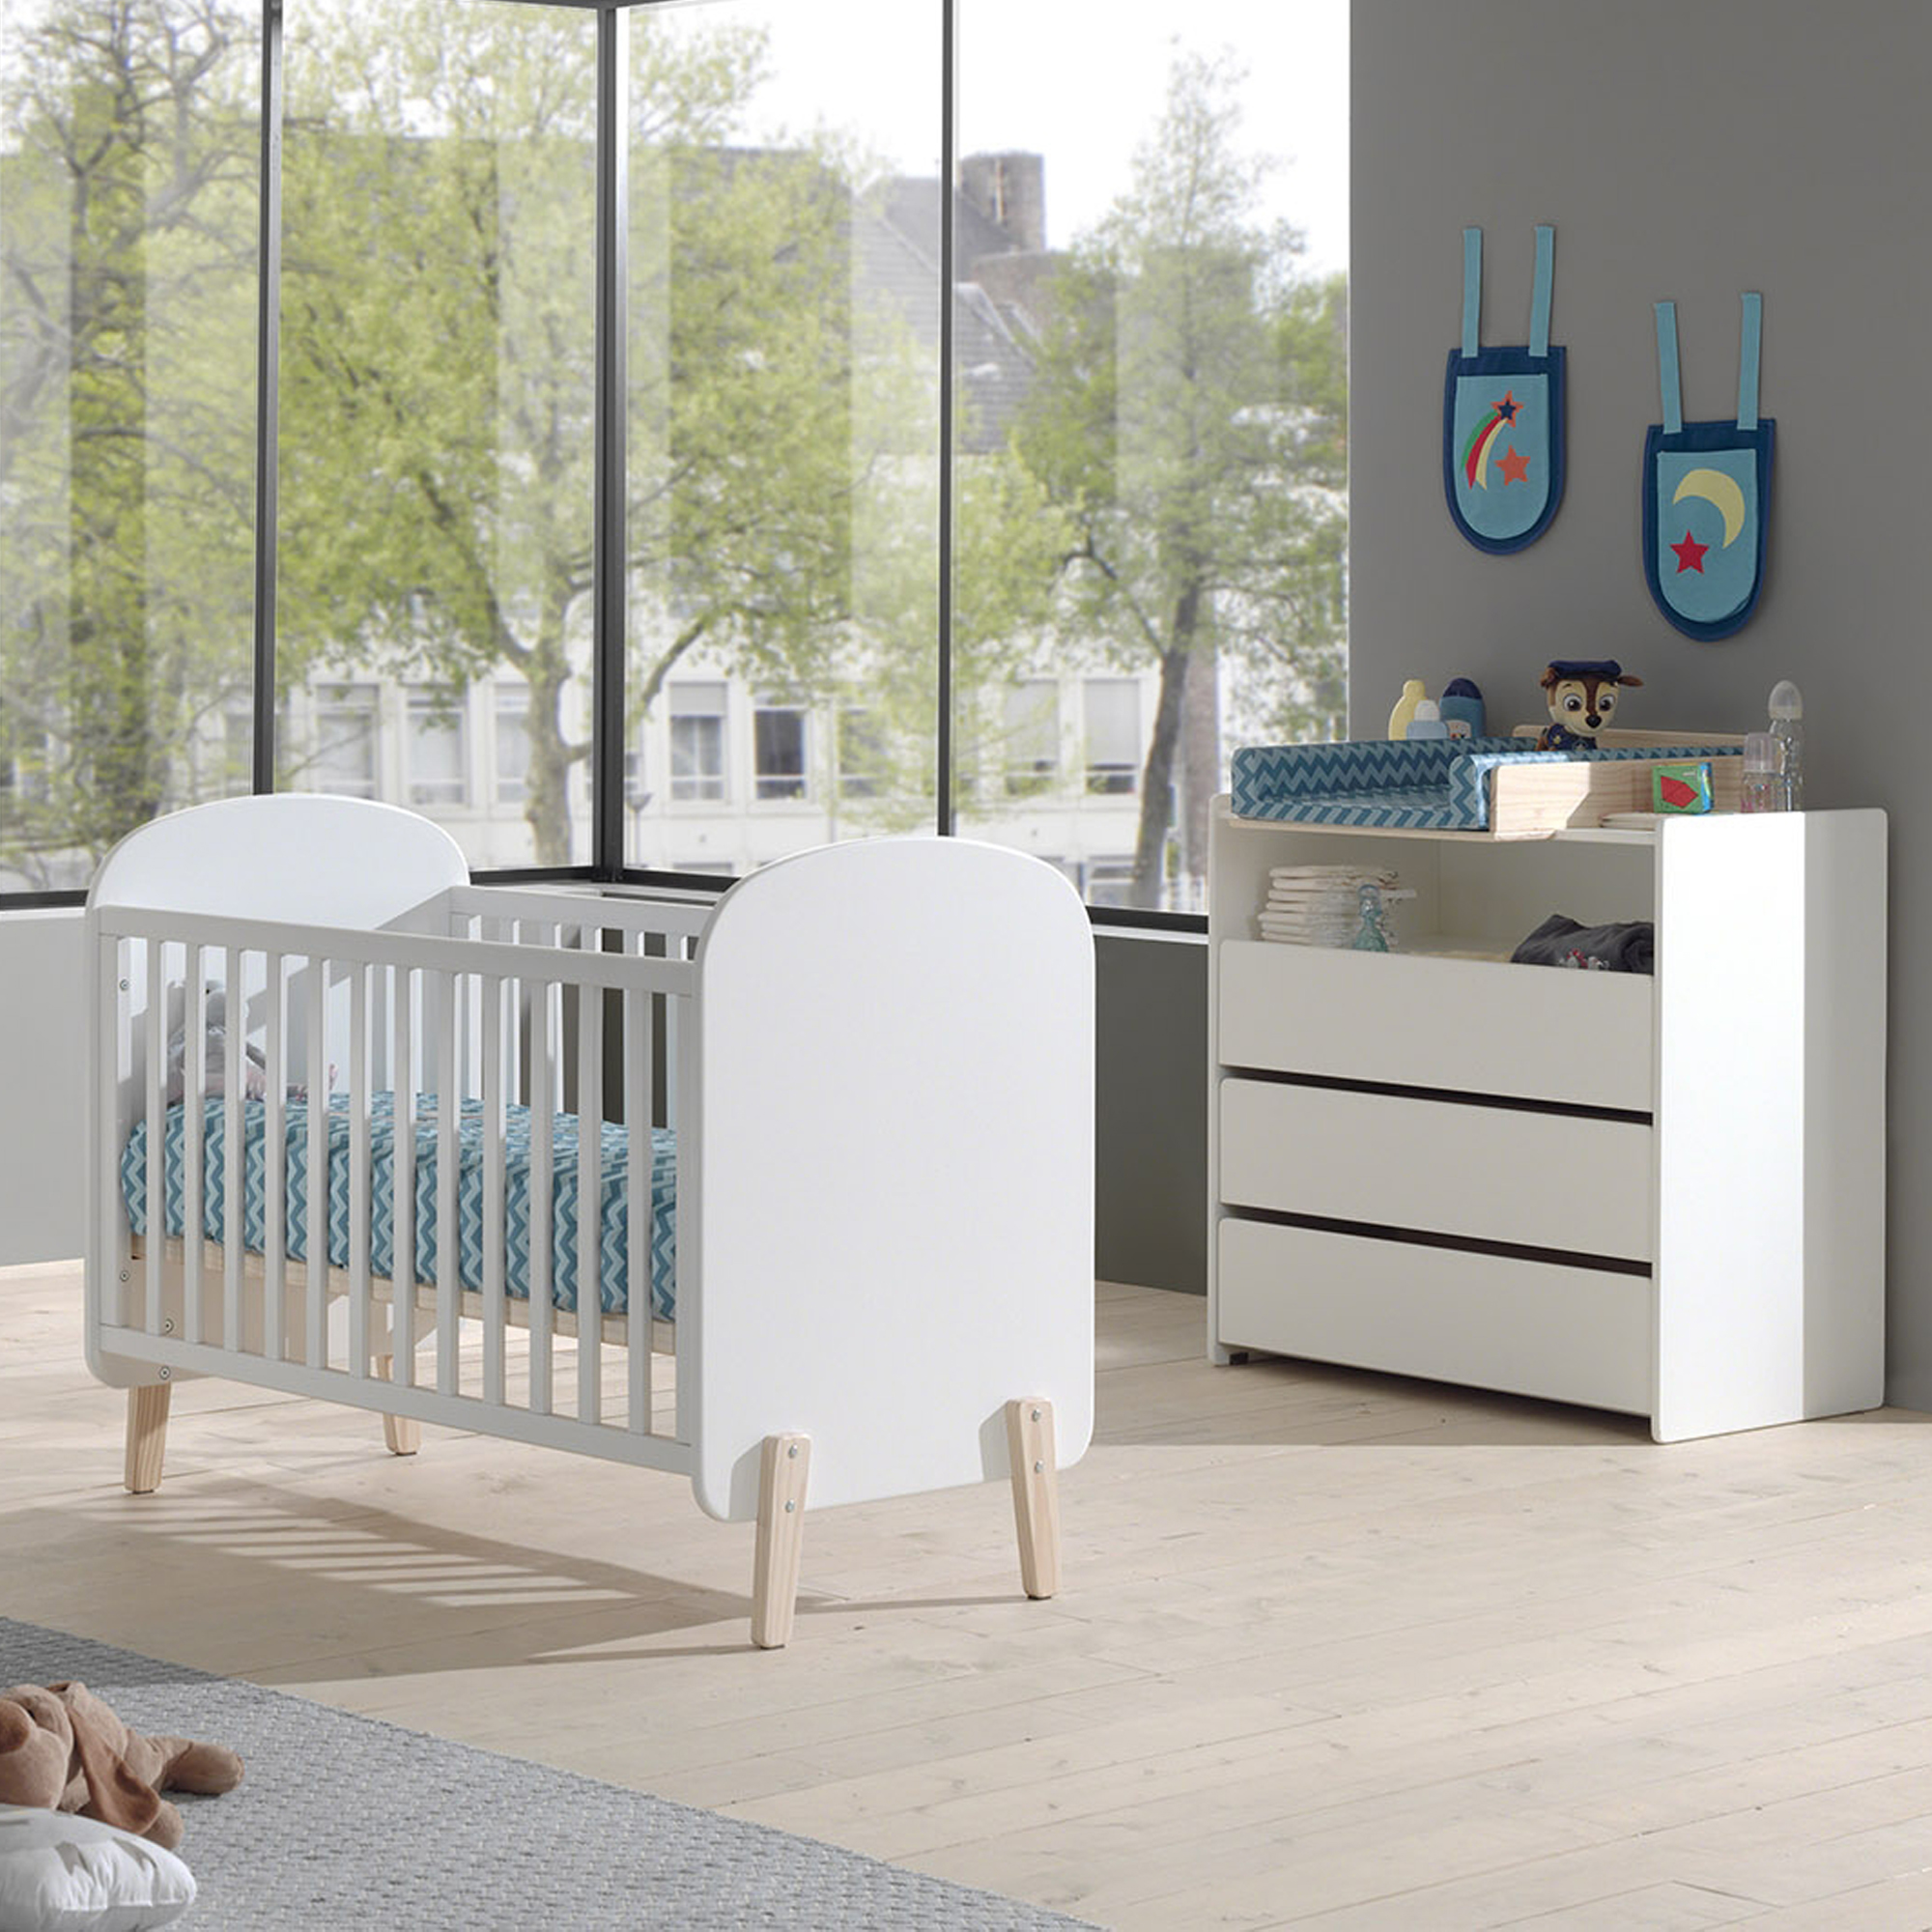 babybett kiddy liegefl che 60 x 120 cm wei kinder jugendzimmer kiddy. Black Bedroom Furniture Sets. Home Design Ideas